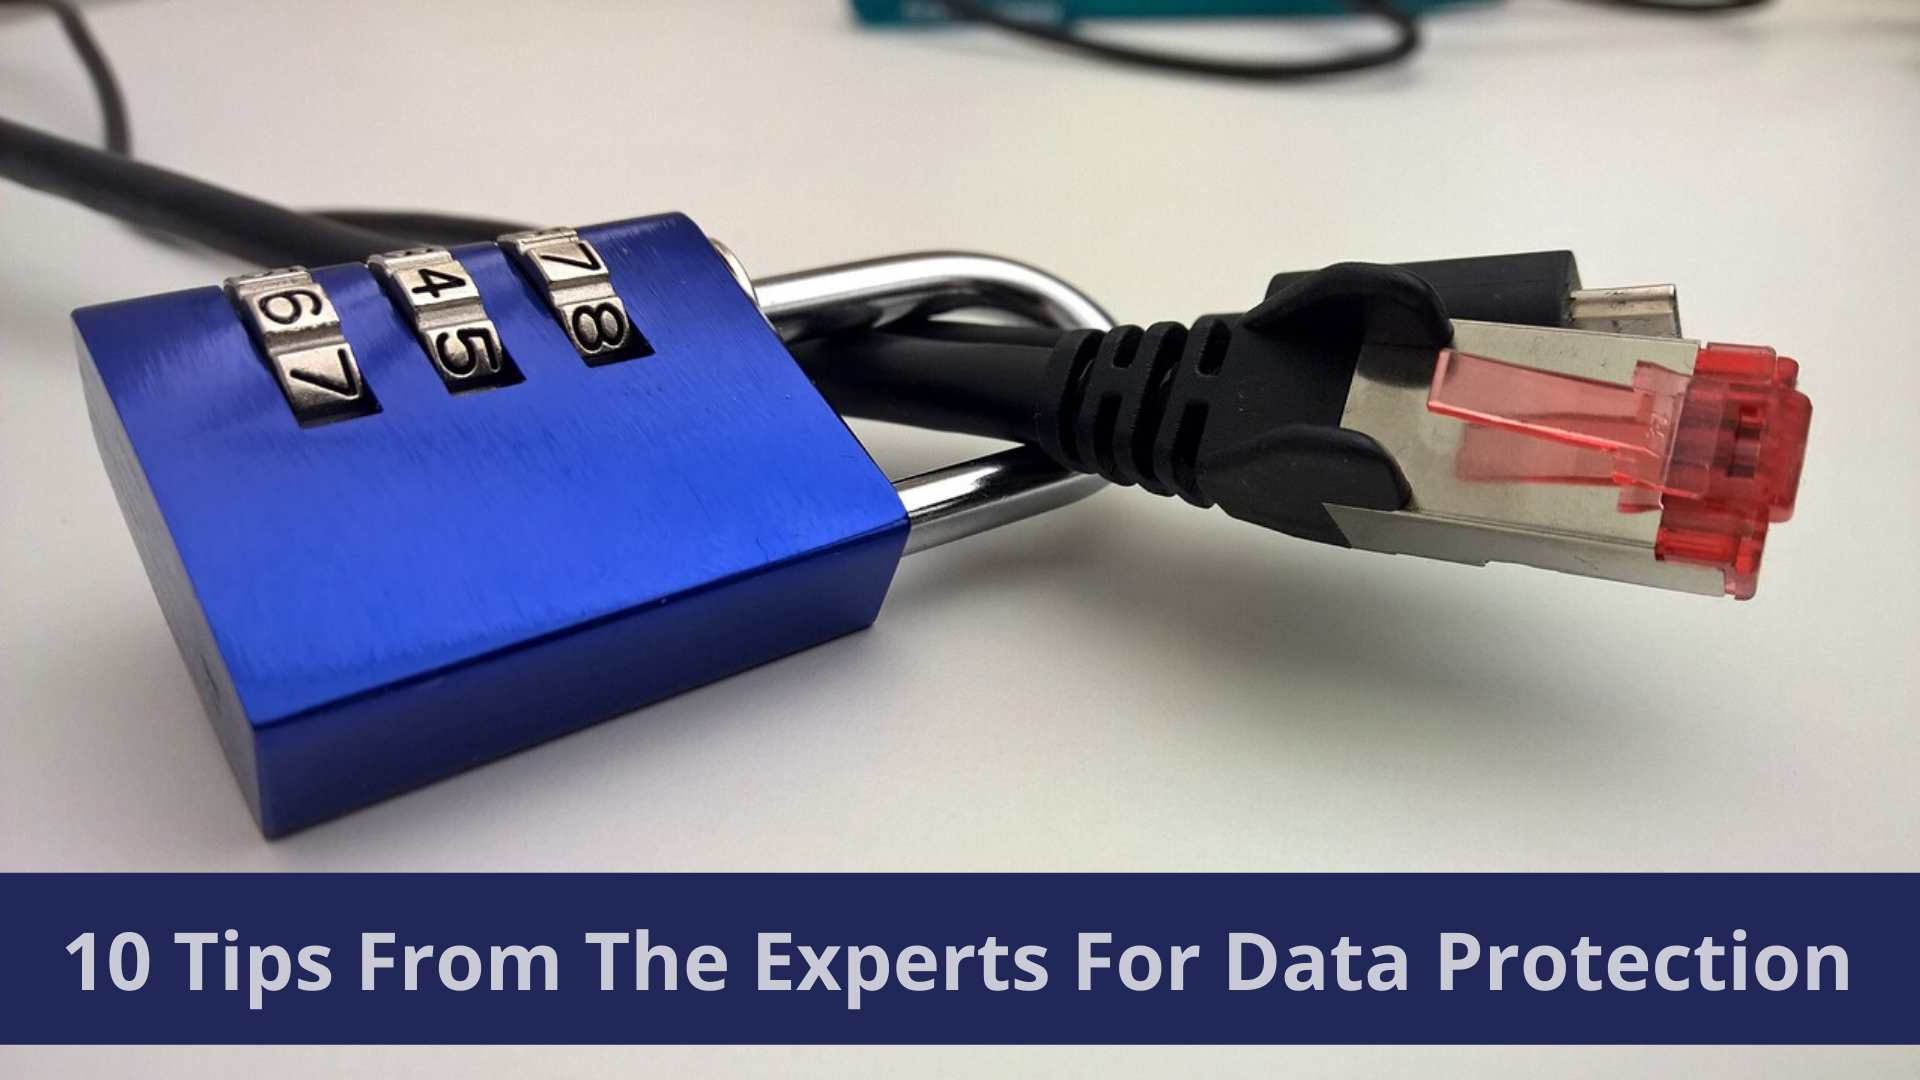 10 Tips From The Experts For Data Protection